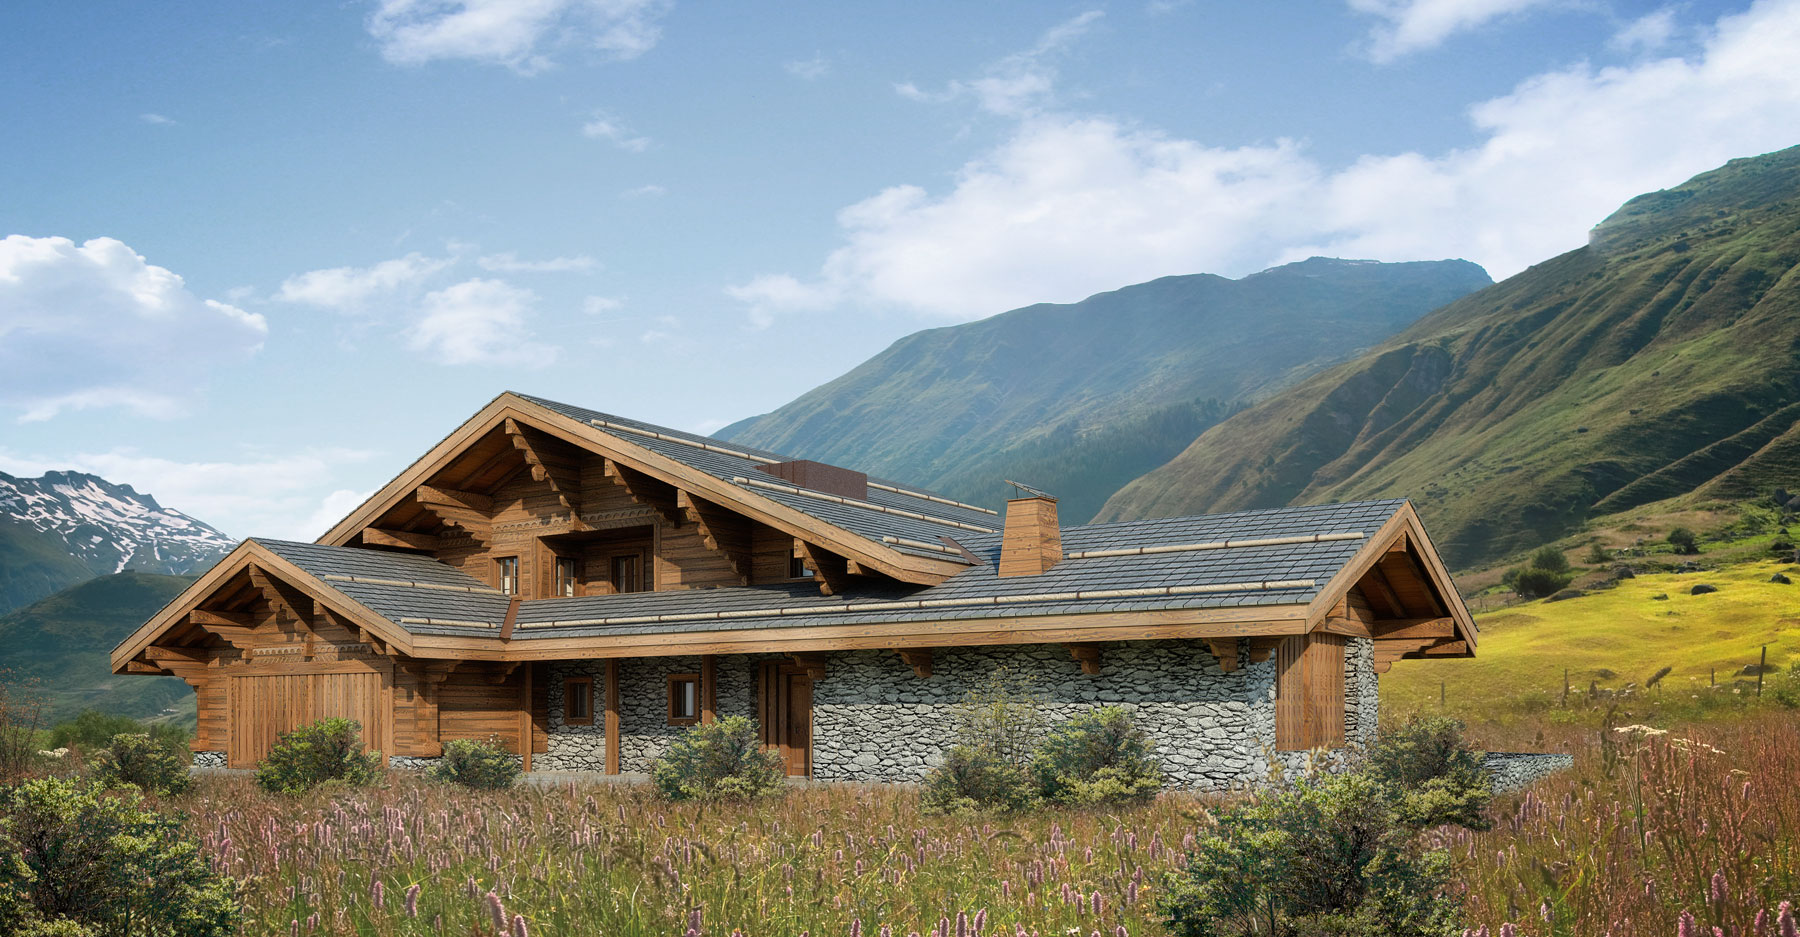 Hauswirth architekten andermatt swiss alps - Chalet architectuur ...